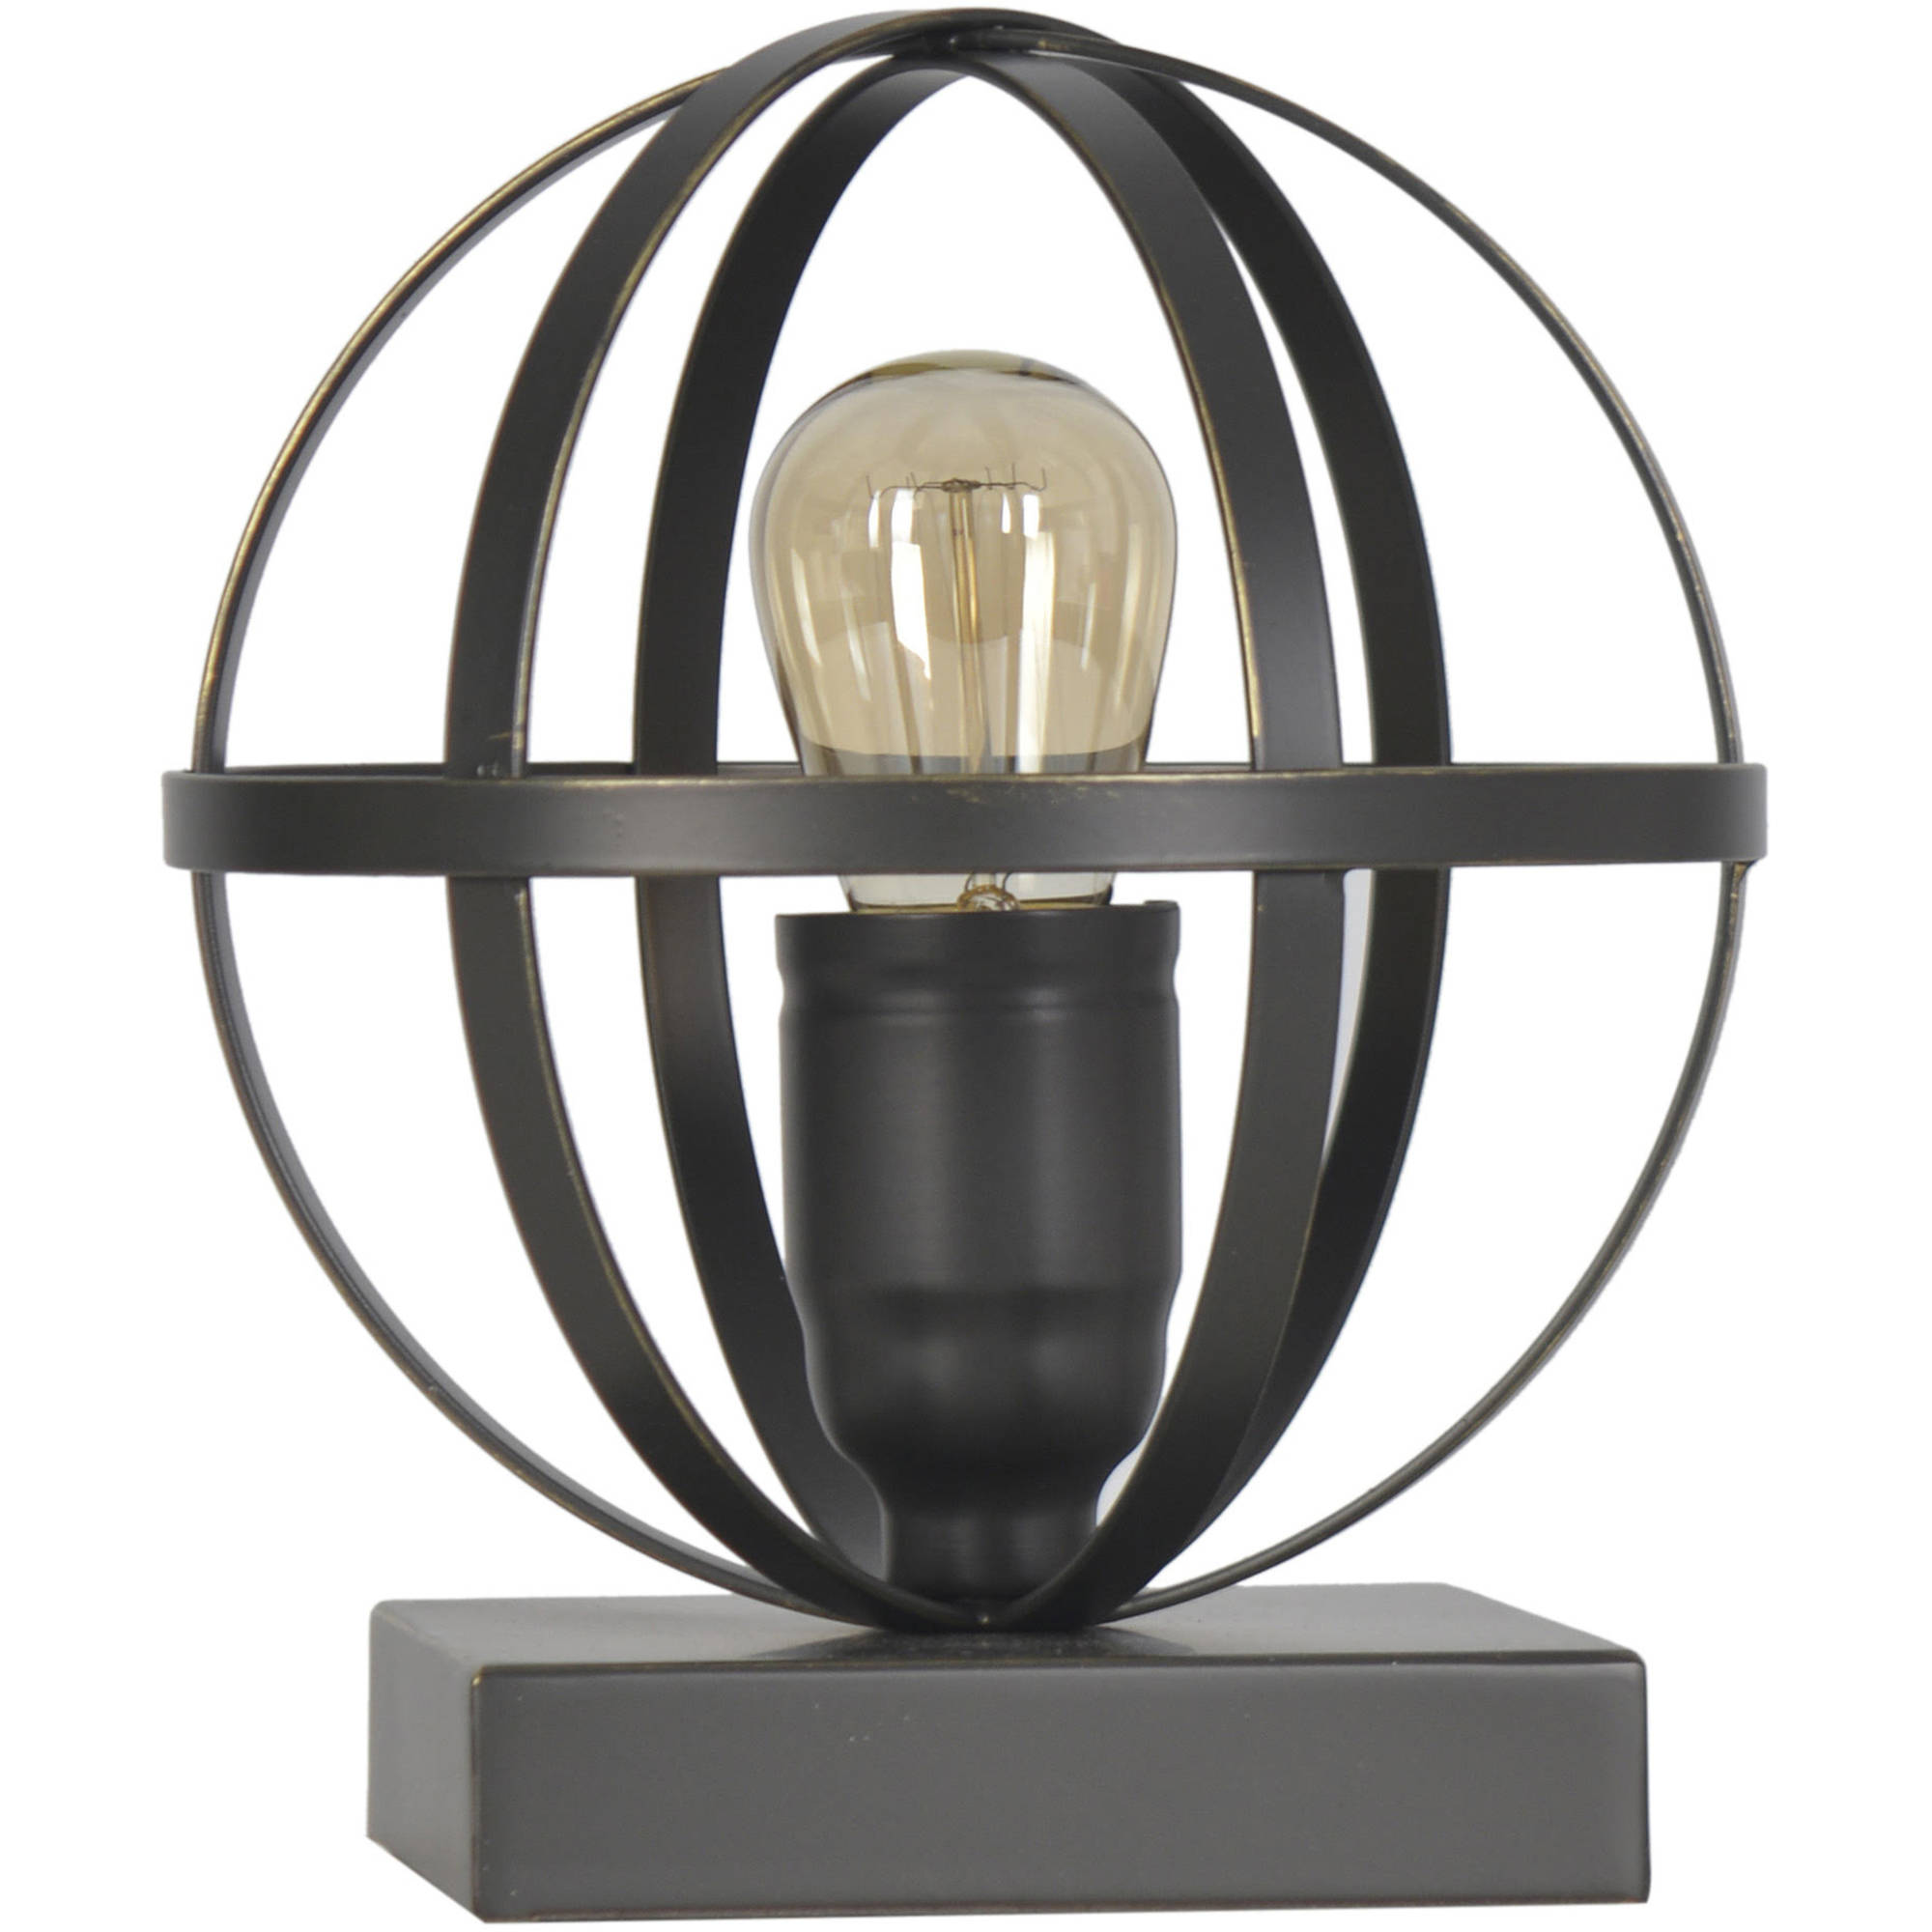 Better Homes and Gardens Black Industrial Orb Lamp